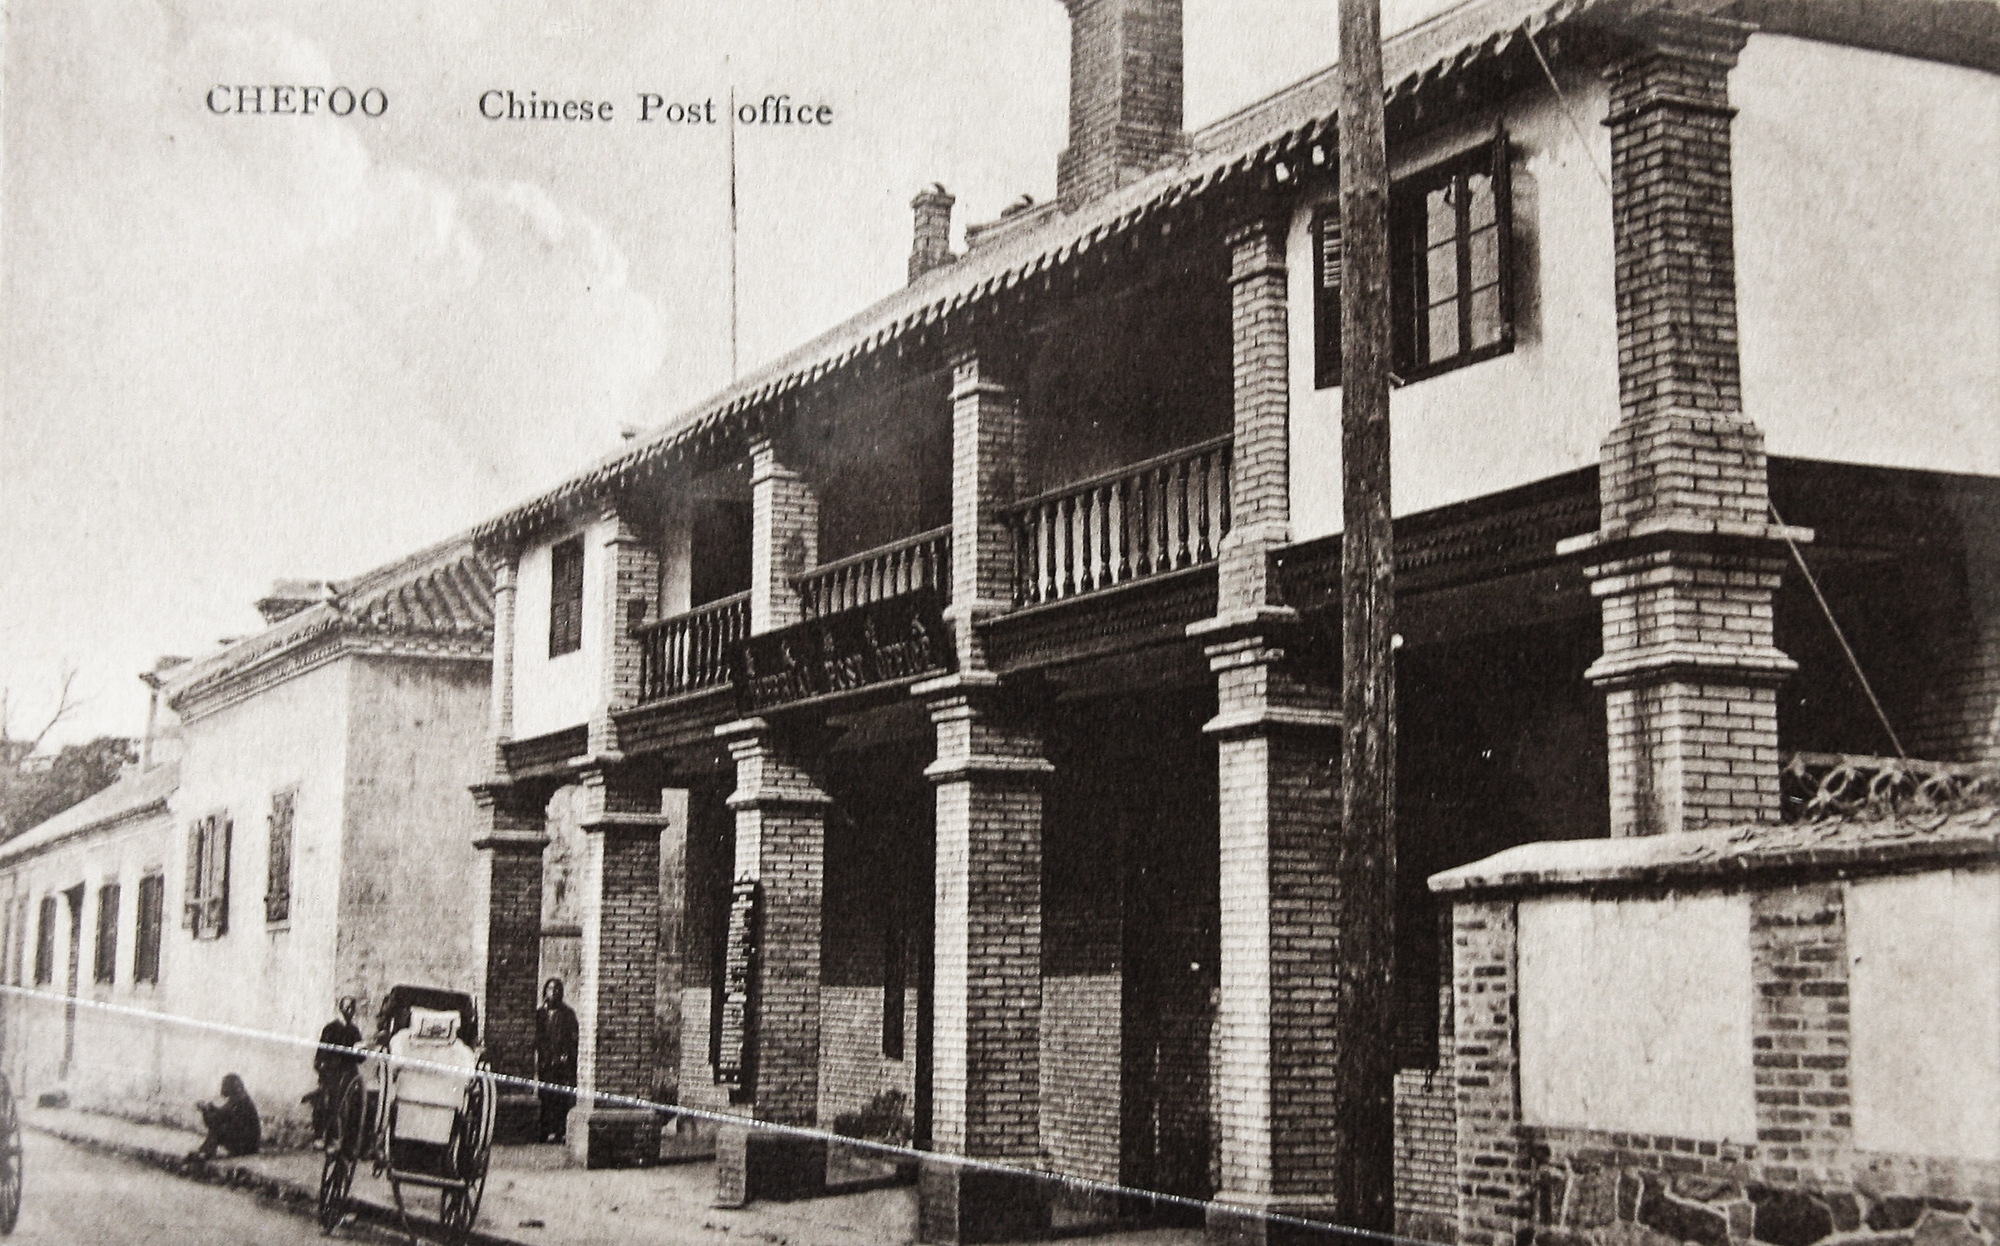 Chinese Post Office, Chefoo. Post card courtesy of Lin Weibin.